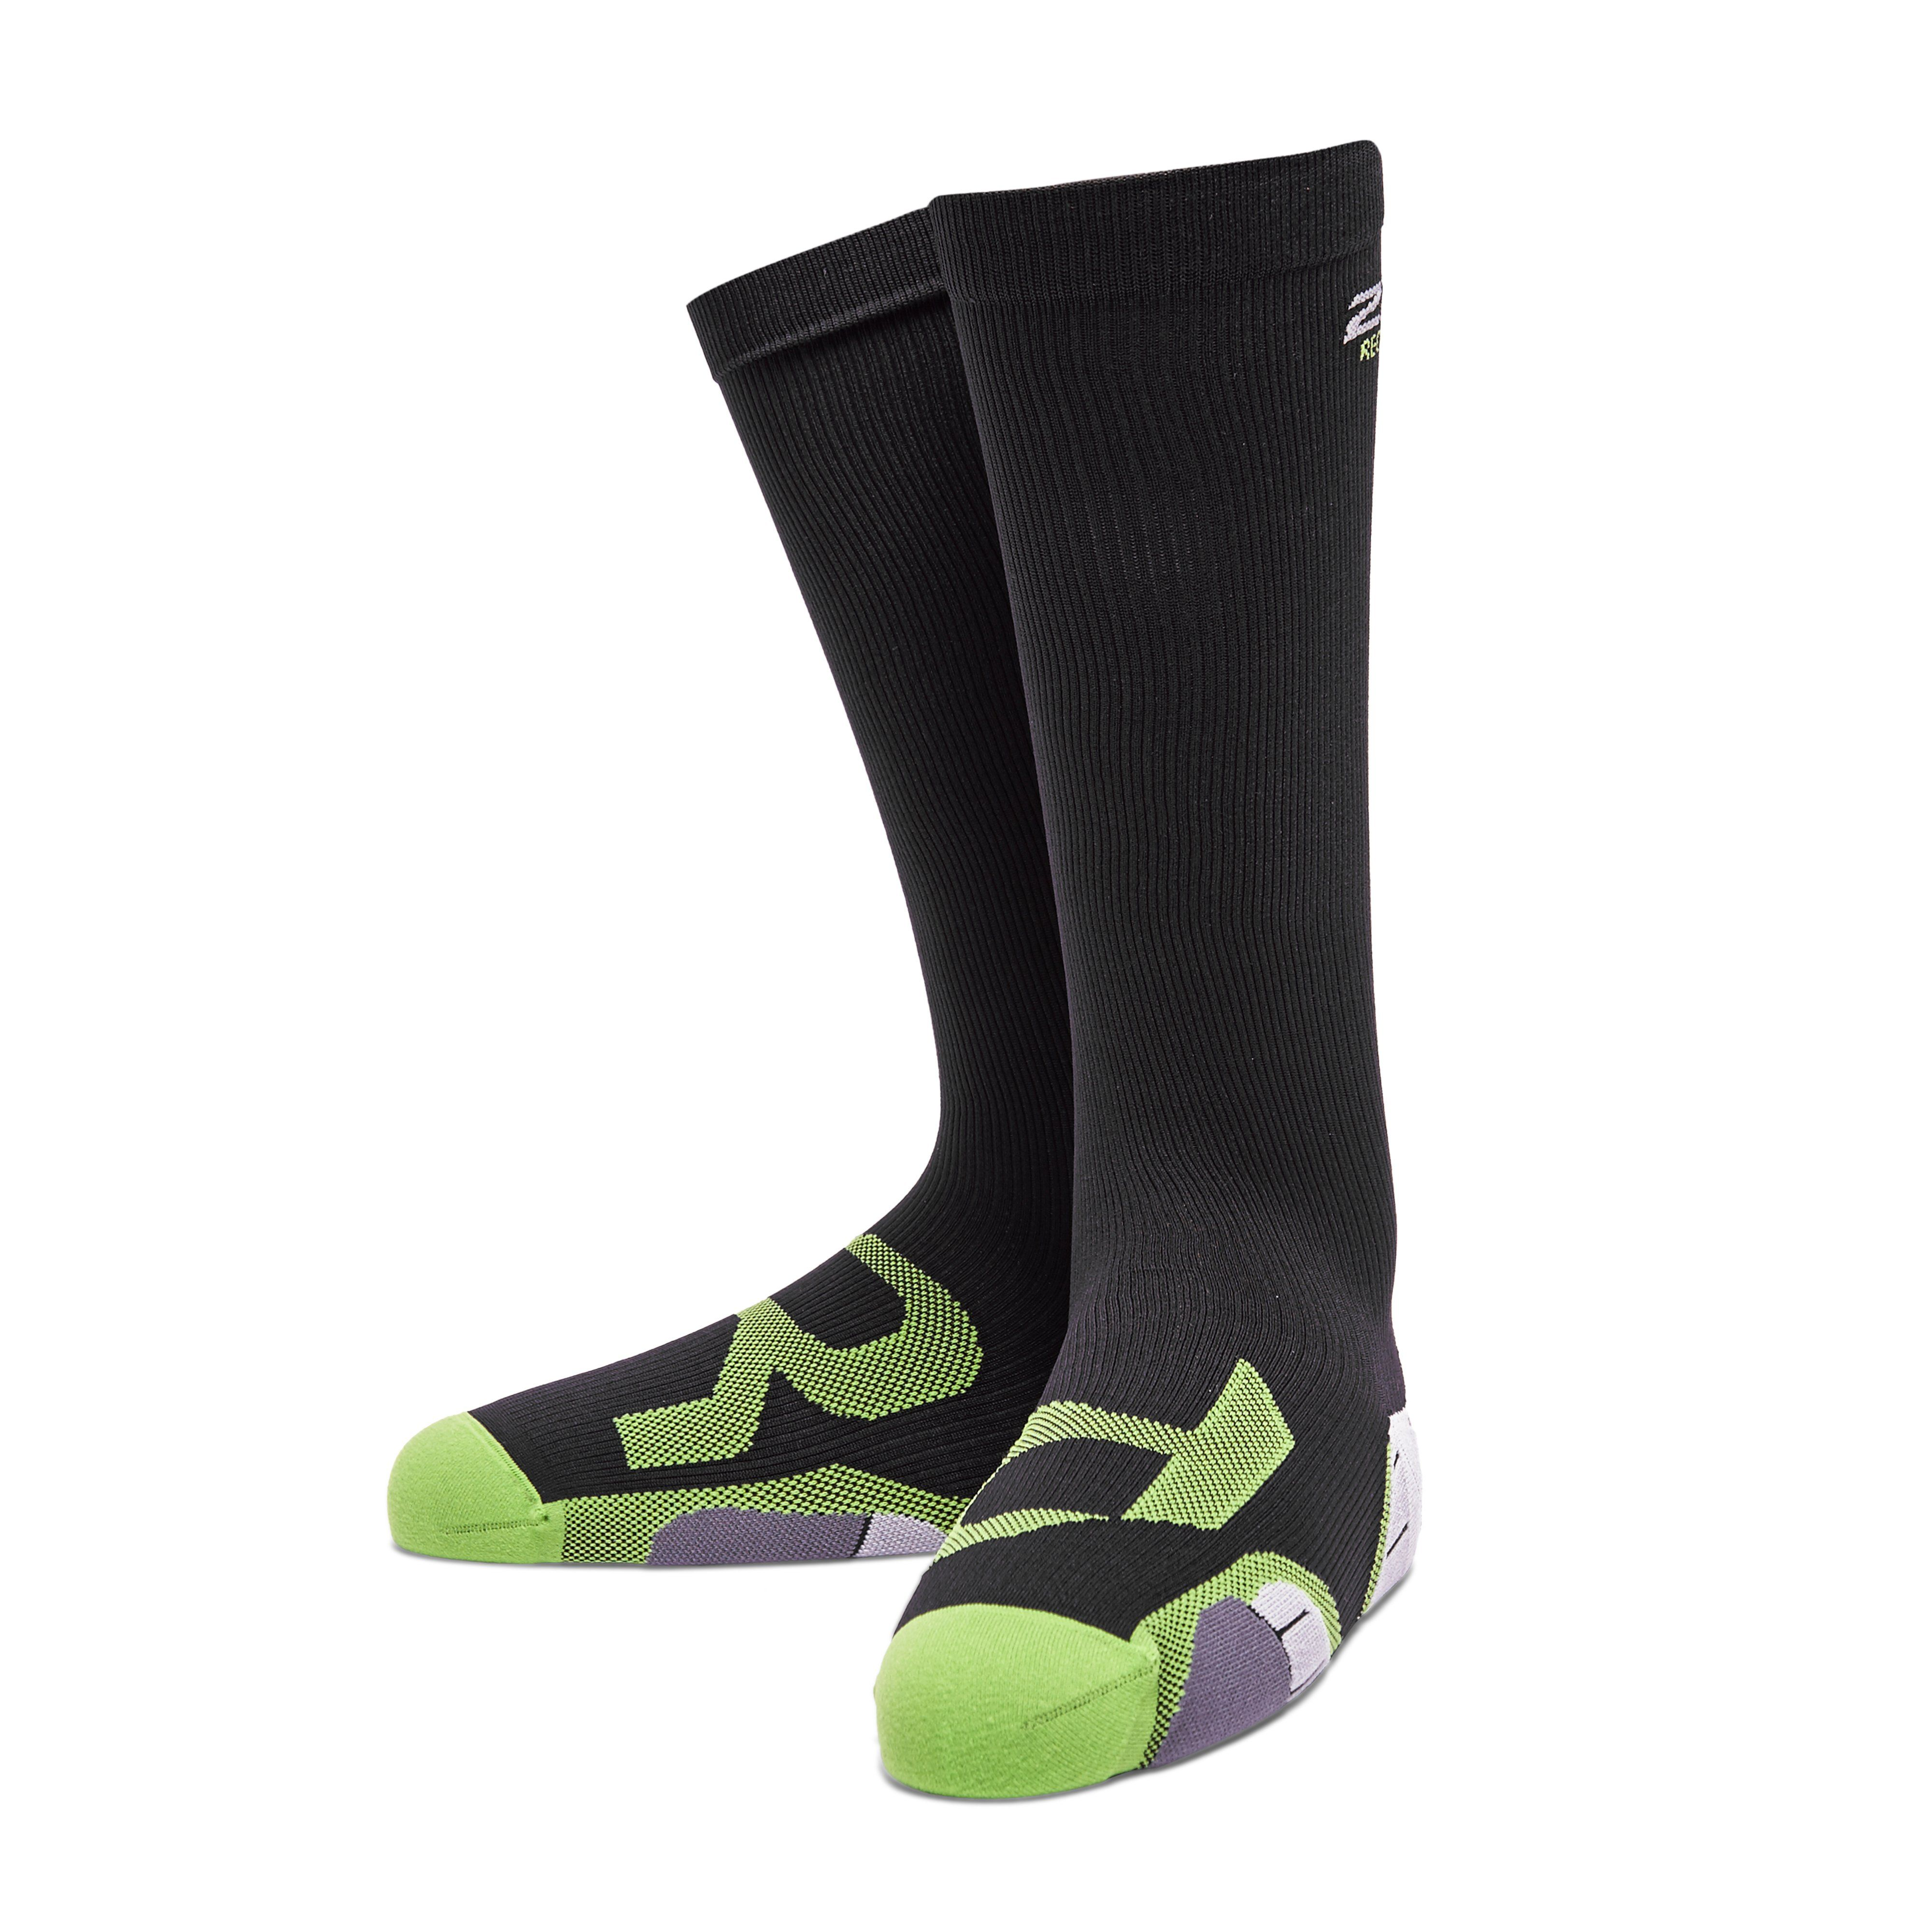 2XU 1 Pair Recovery Women's Compression Socks